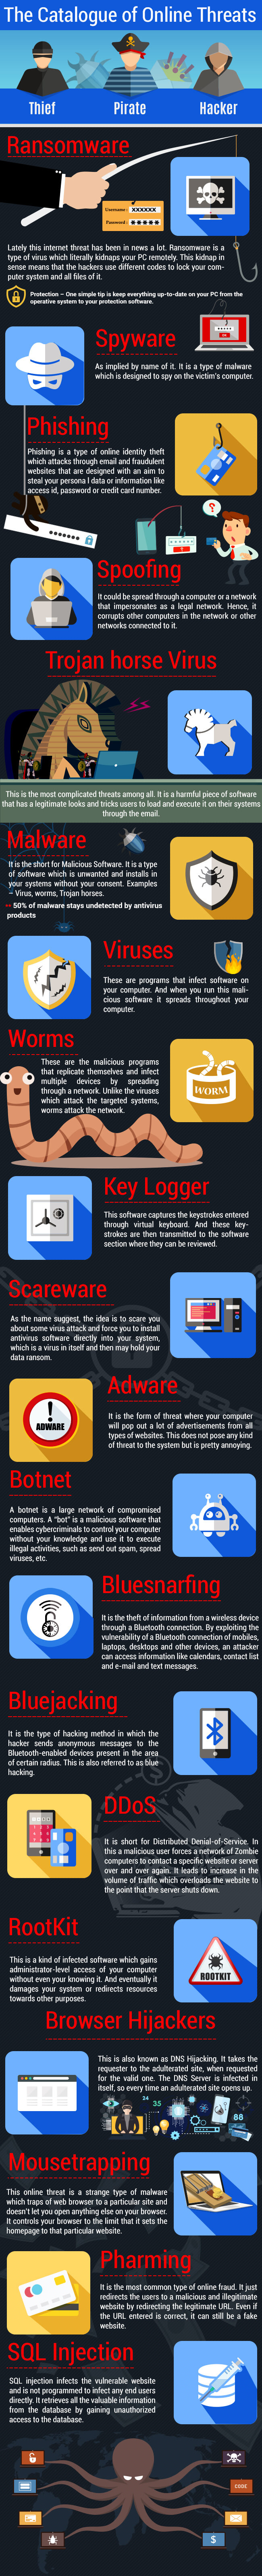 types of internet threats infographic